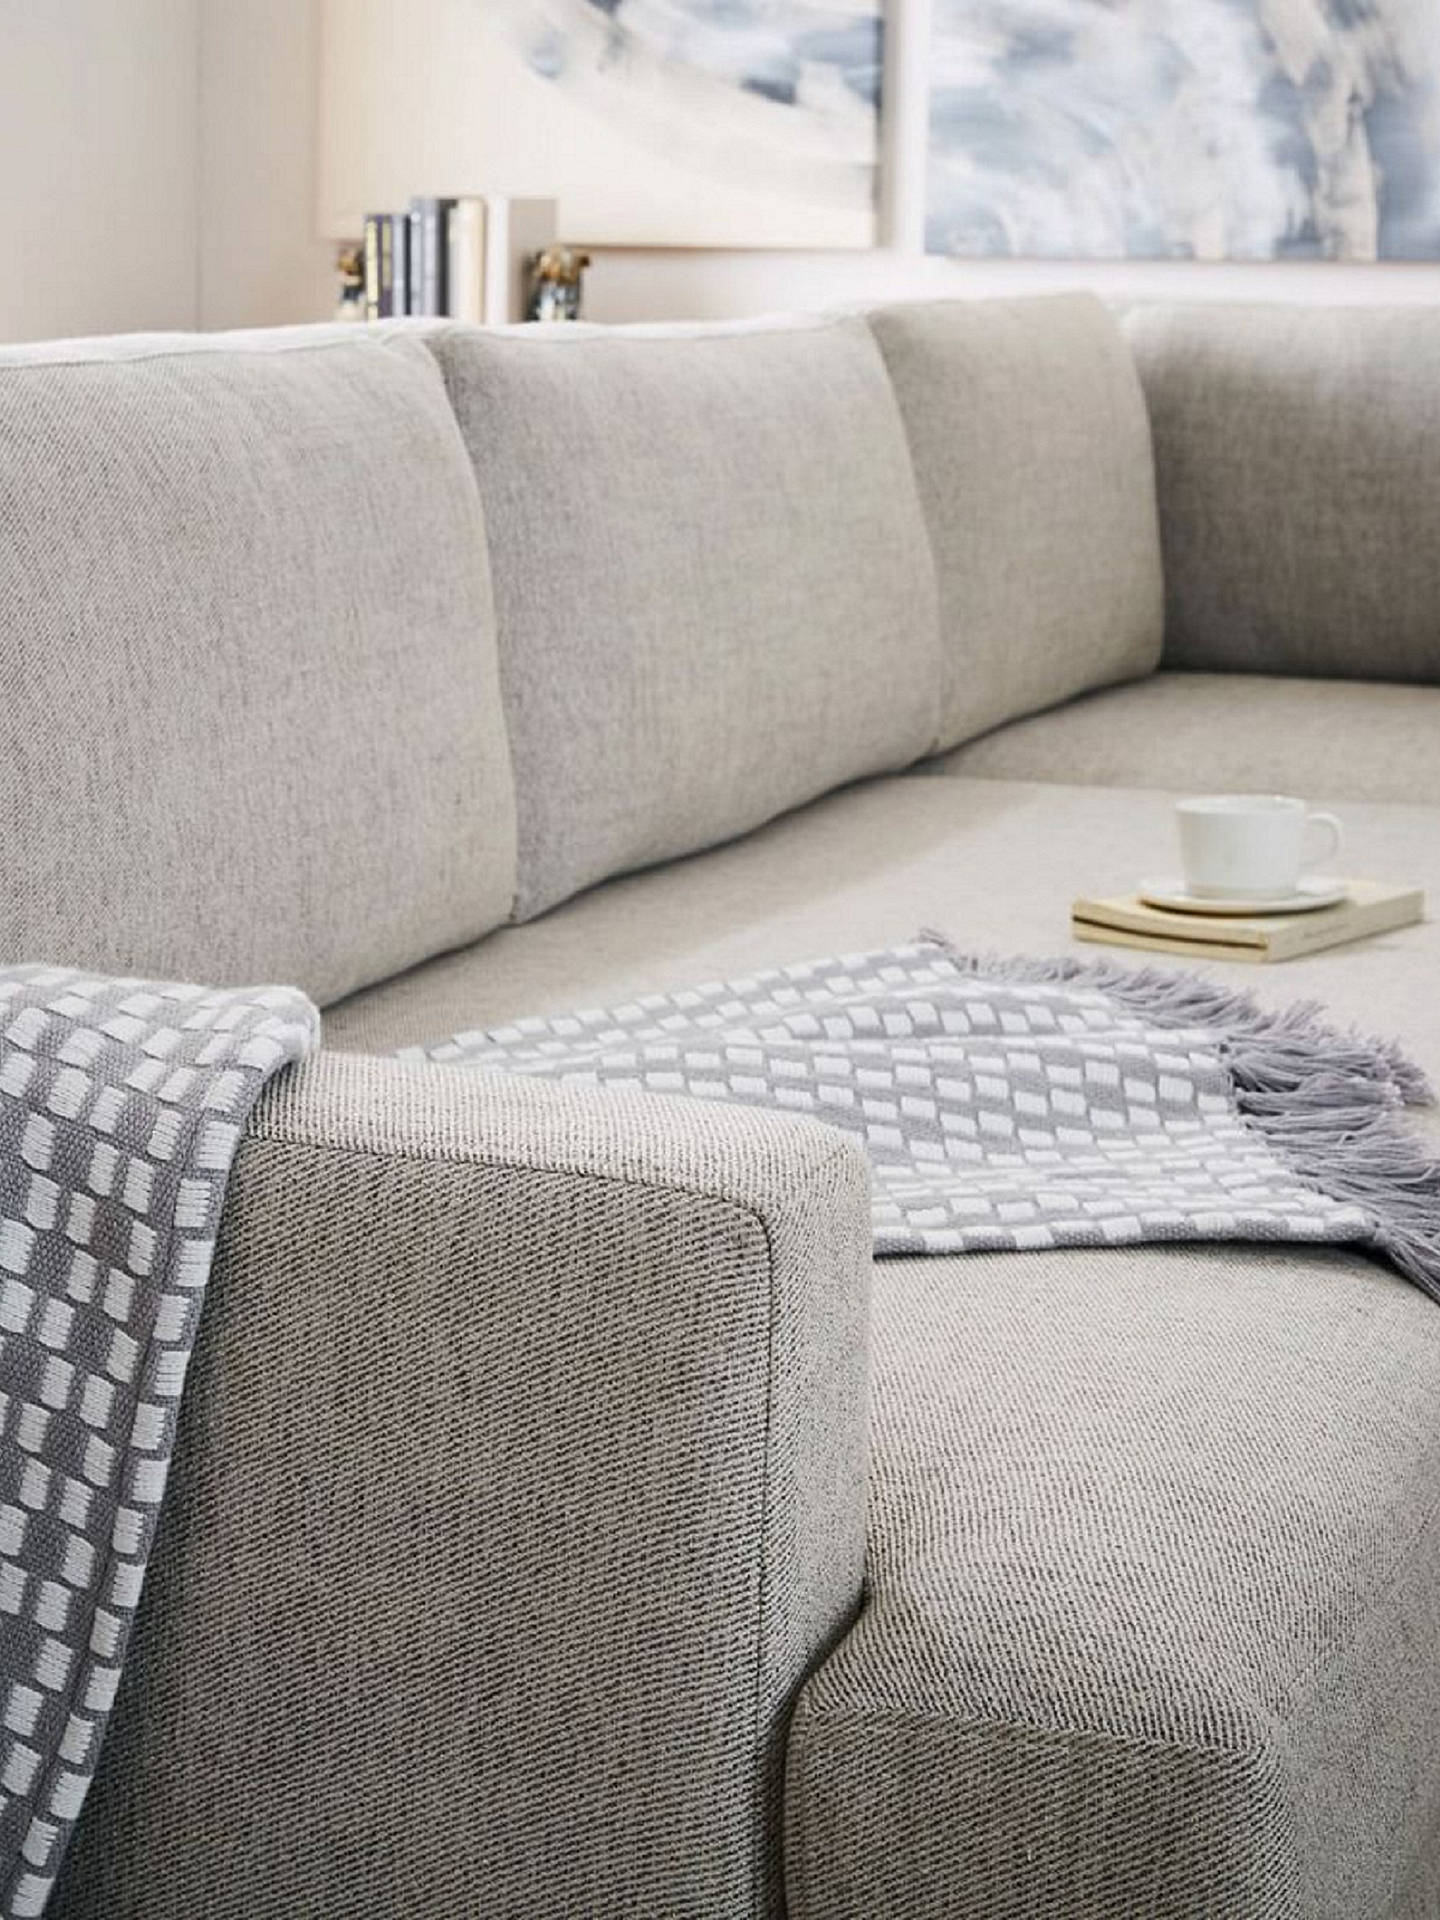 Enjoyable West Elm Andes Large 3 Seater Rhf Sectional Sofa Granite Alphanode Cool Chair Designs And Ideas Alphanodeonline